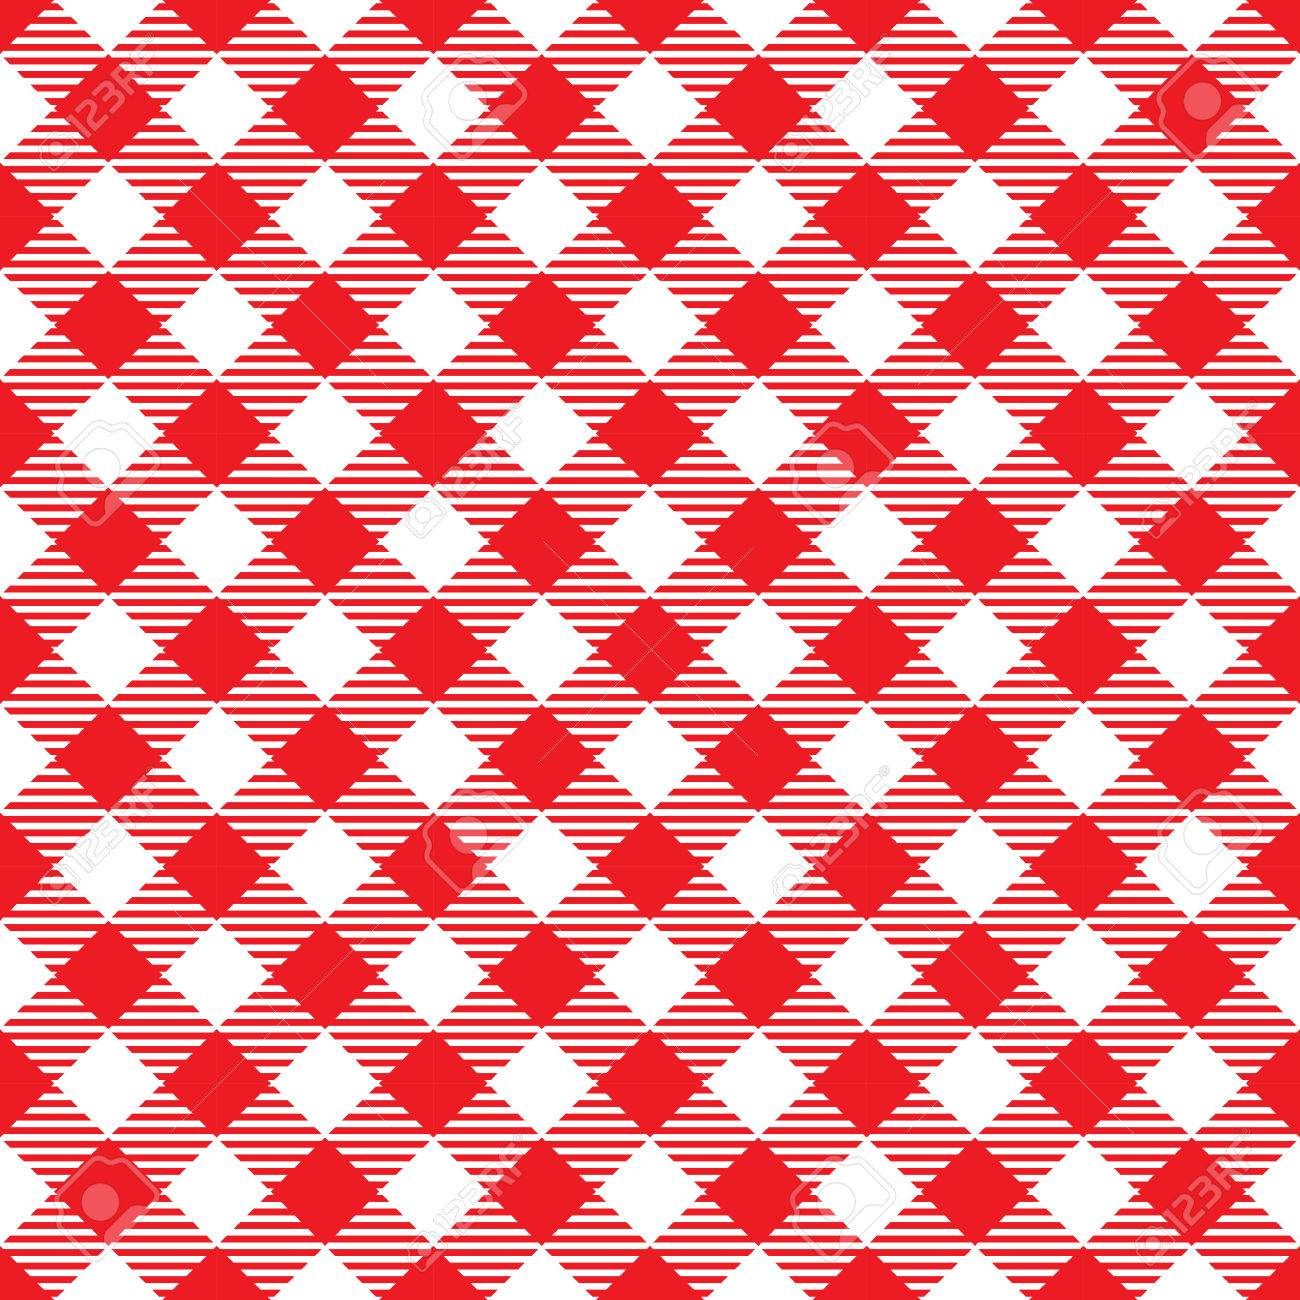 Seamless Red White Traditional Gingham Pattern Fabric Texture For Design Template Stock Vector